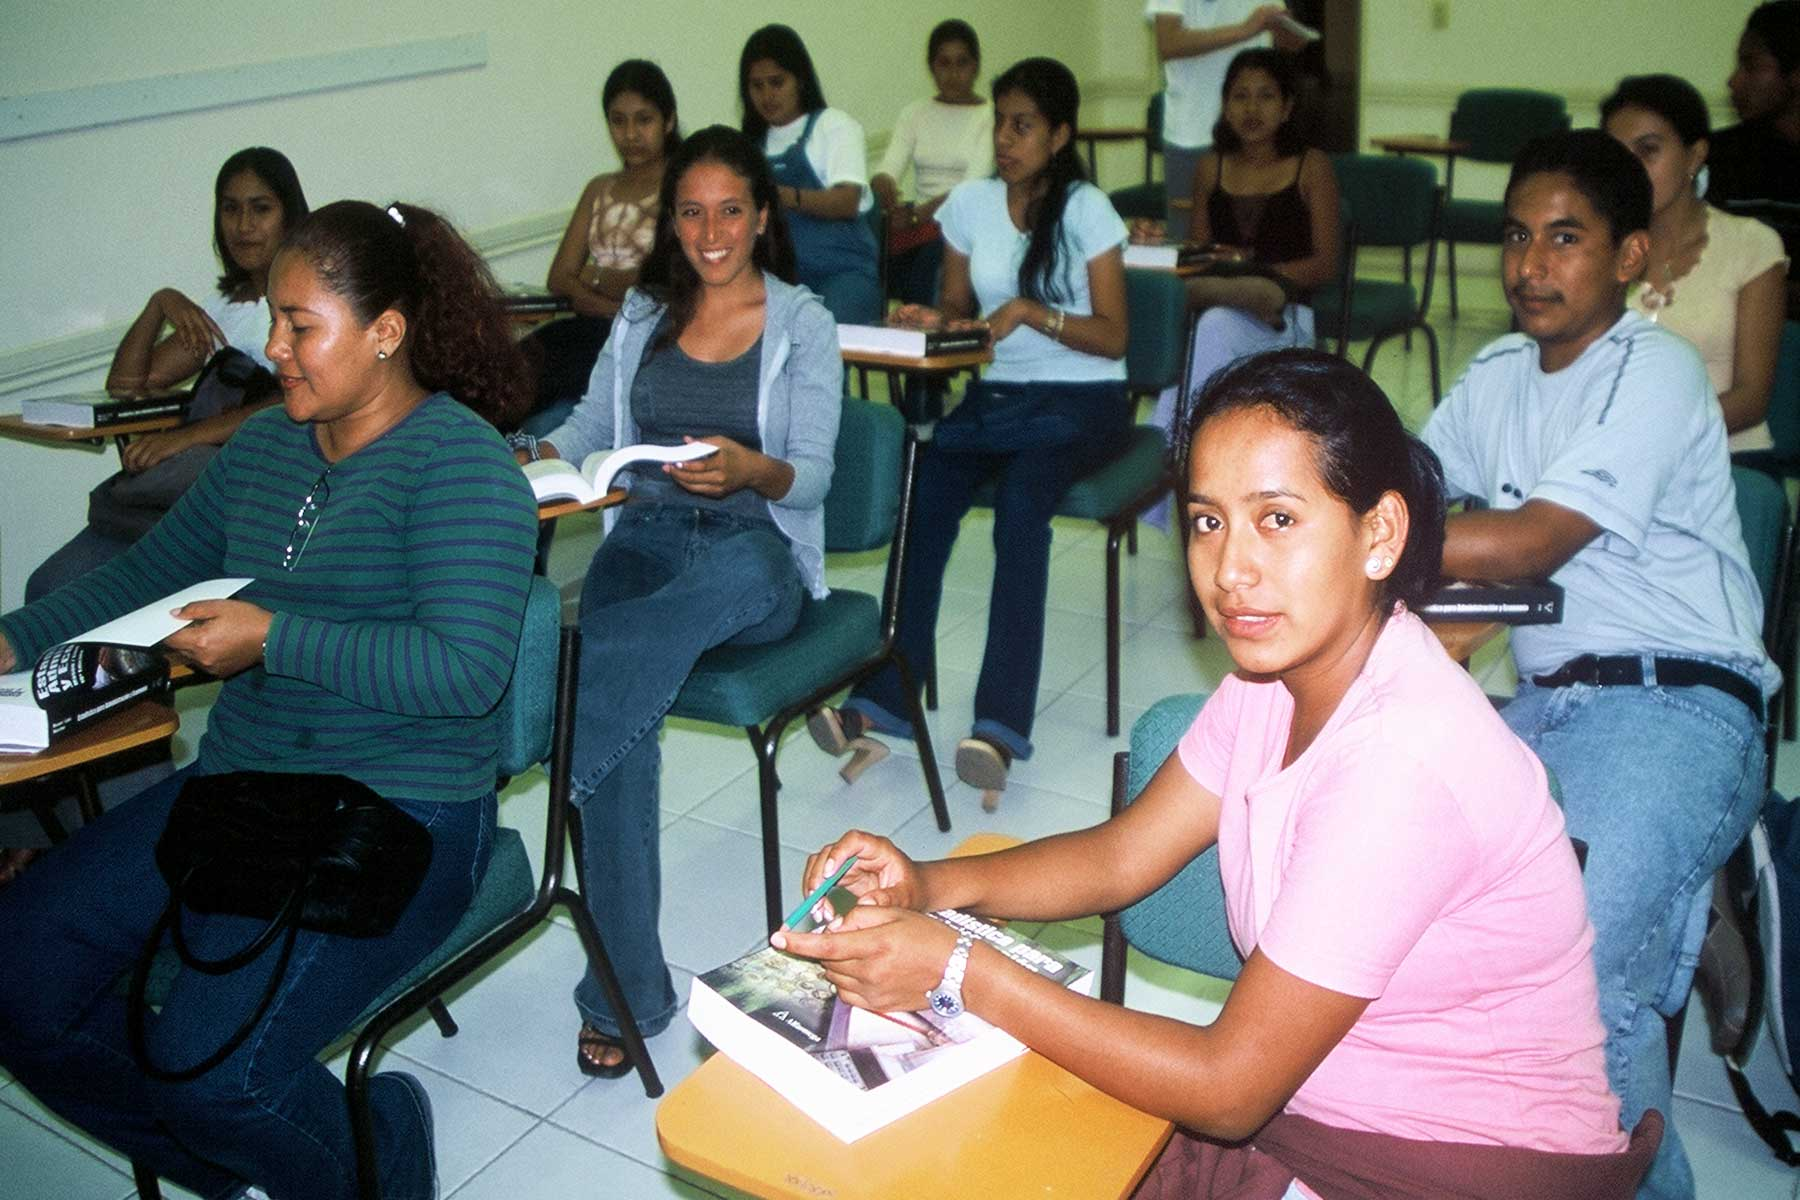 San Cristobal Community College | Galapagos | Dr. Steven A. Martin | Galapagos Photo Journal | Education Online